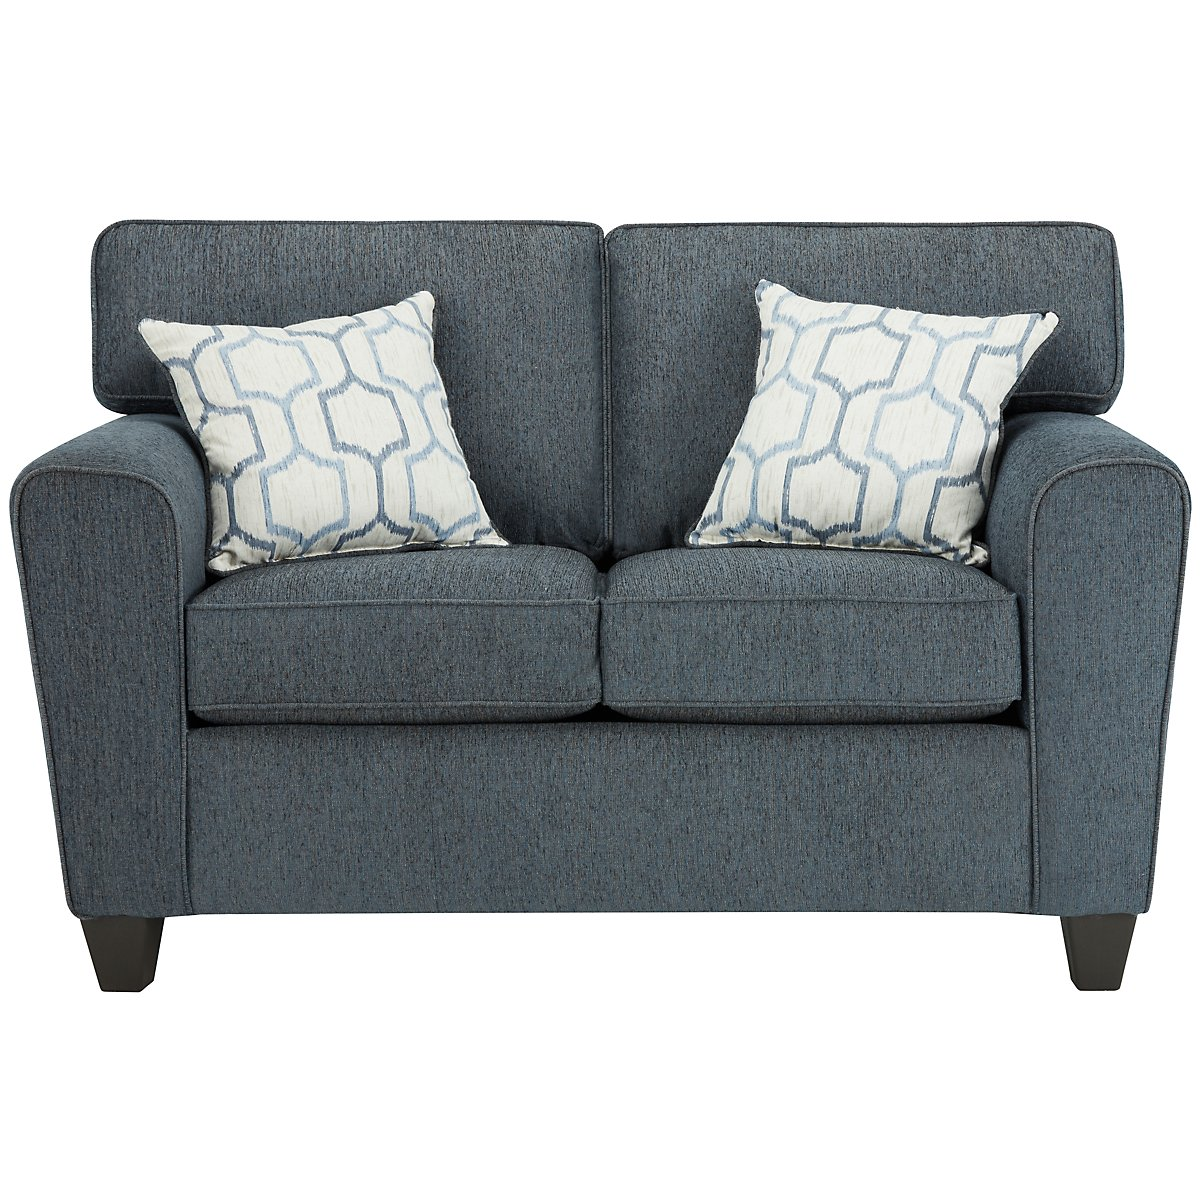 Living Room Loveseats City Furniture Living Room Furniture Loveseats